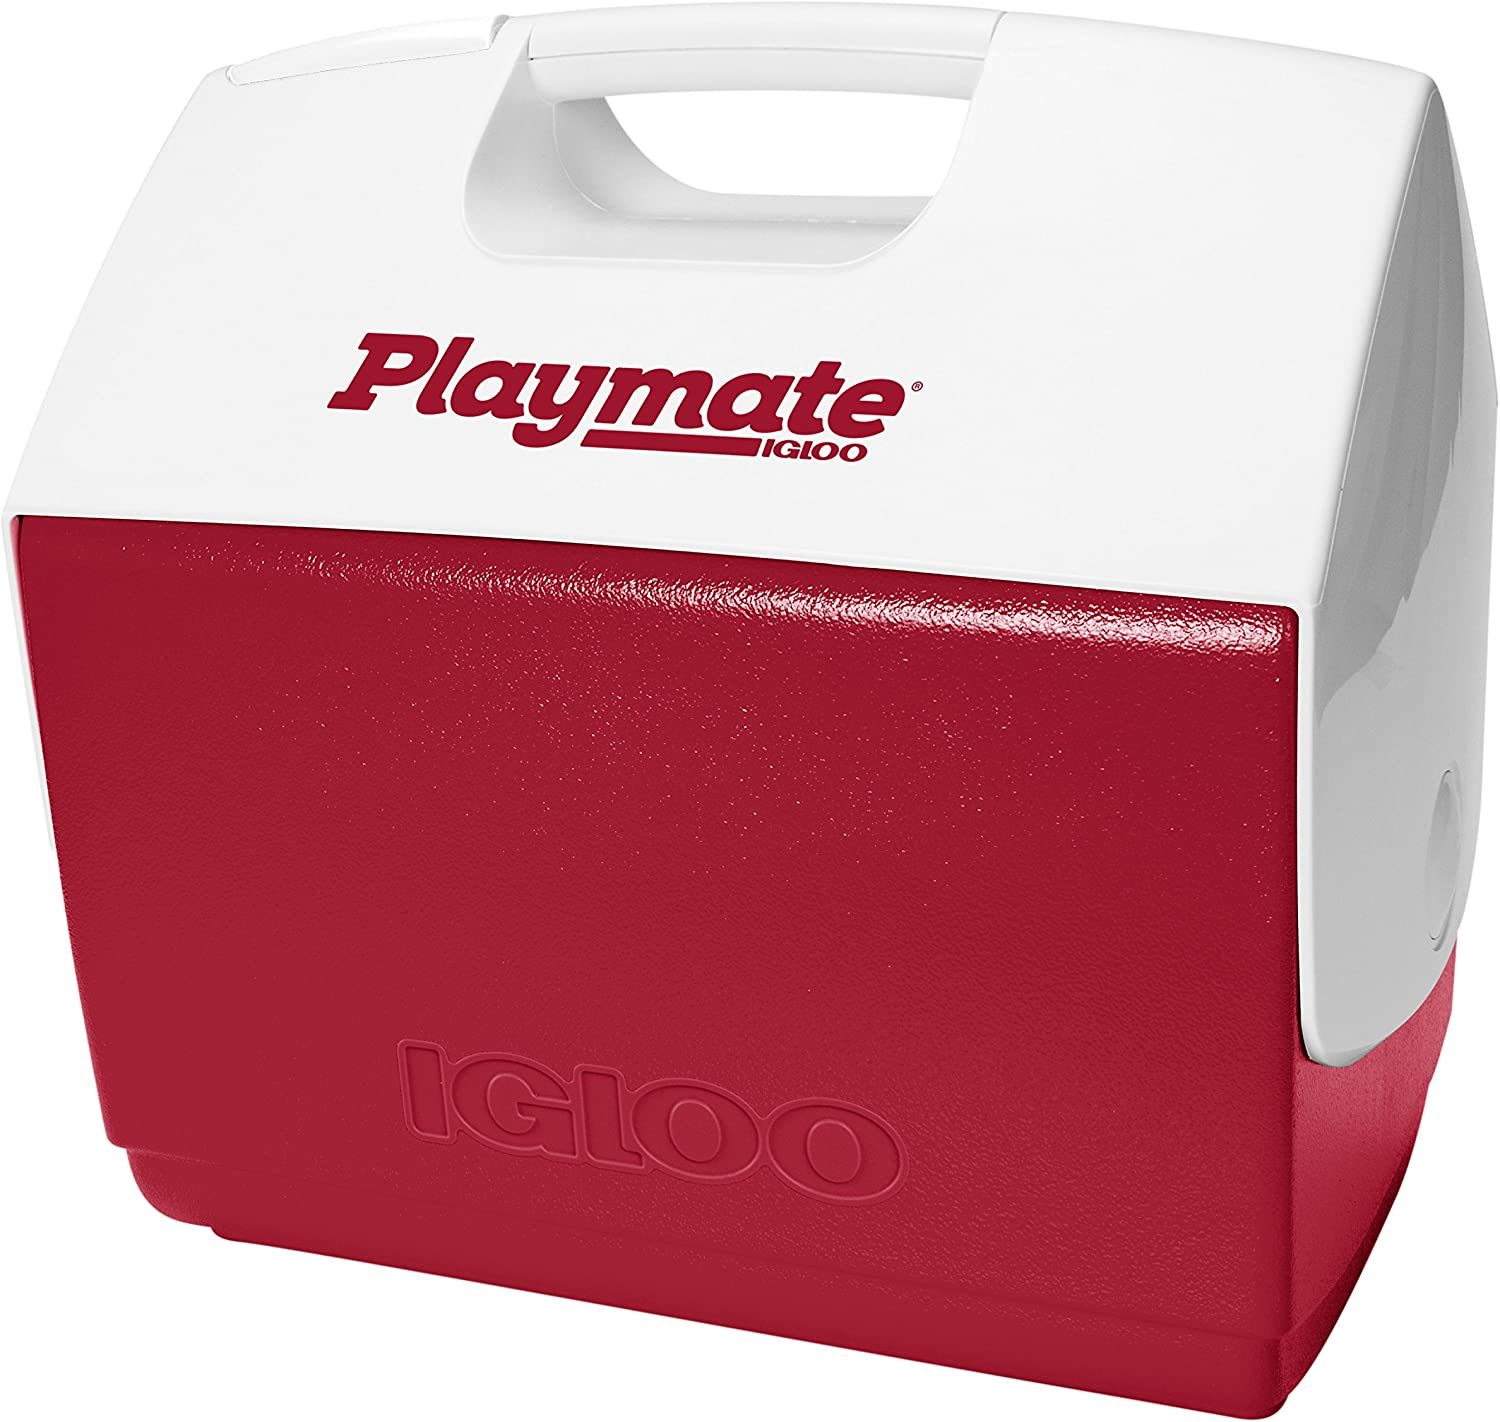 Igloo Playmate Elite 16 Qt. Personal Sized Cooler, Red body with white lid – 43362